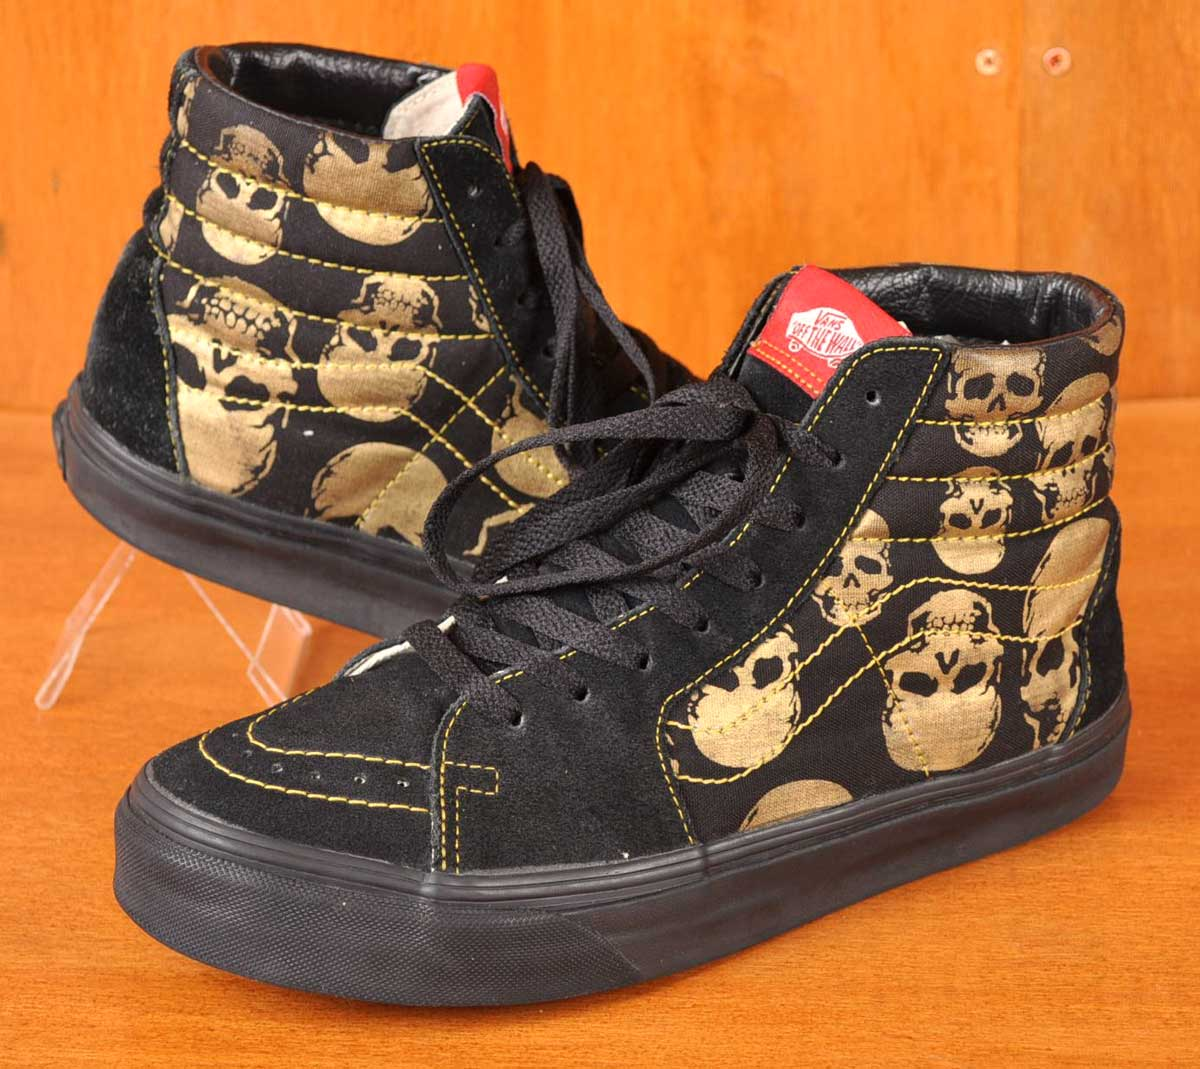 4df030c5651d VANS vans   SK8-HI skating high HI-TOP high top   black   gold skull  pattern   JPN26.0cm